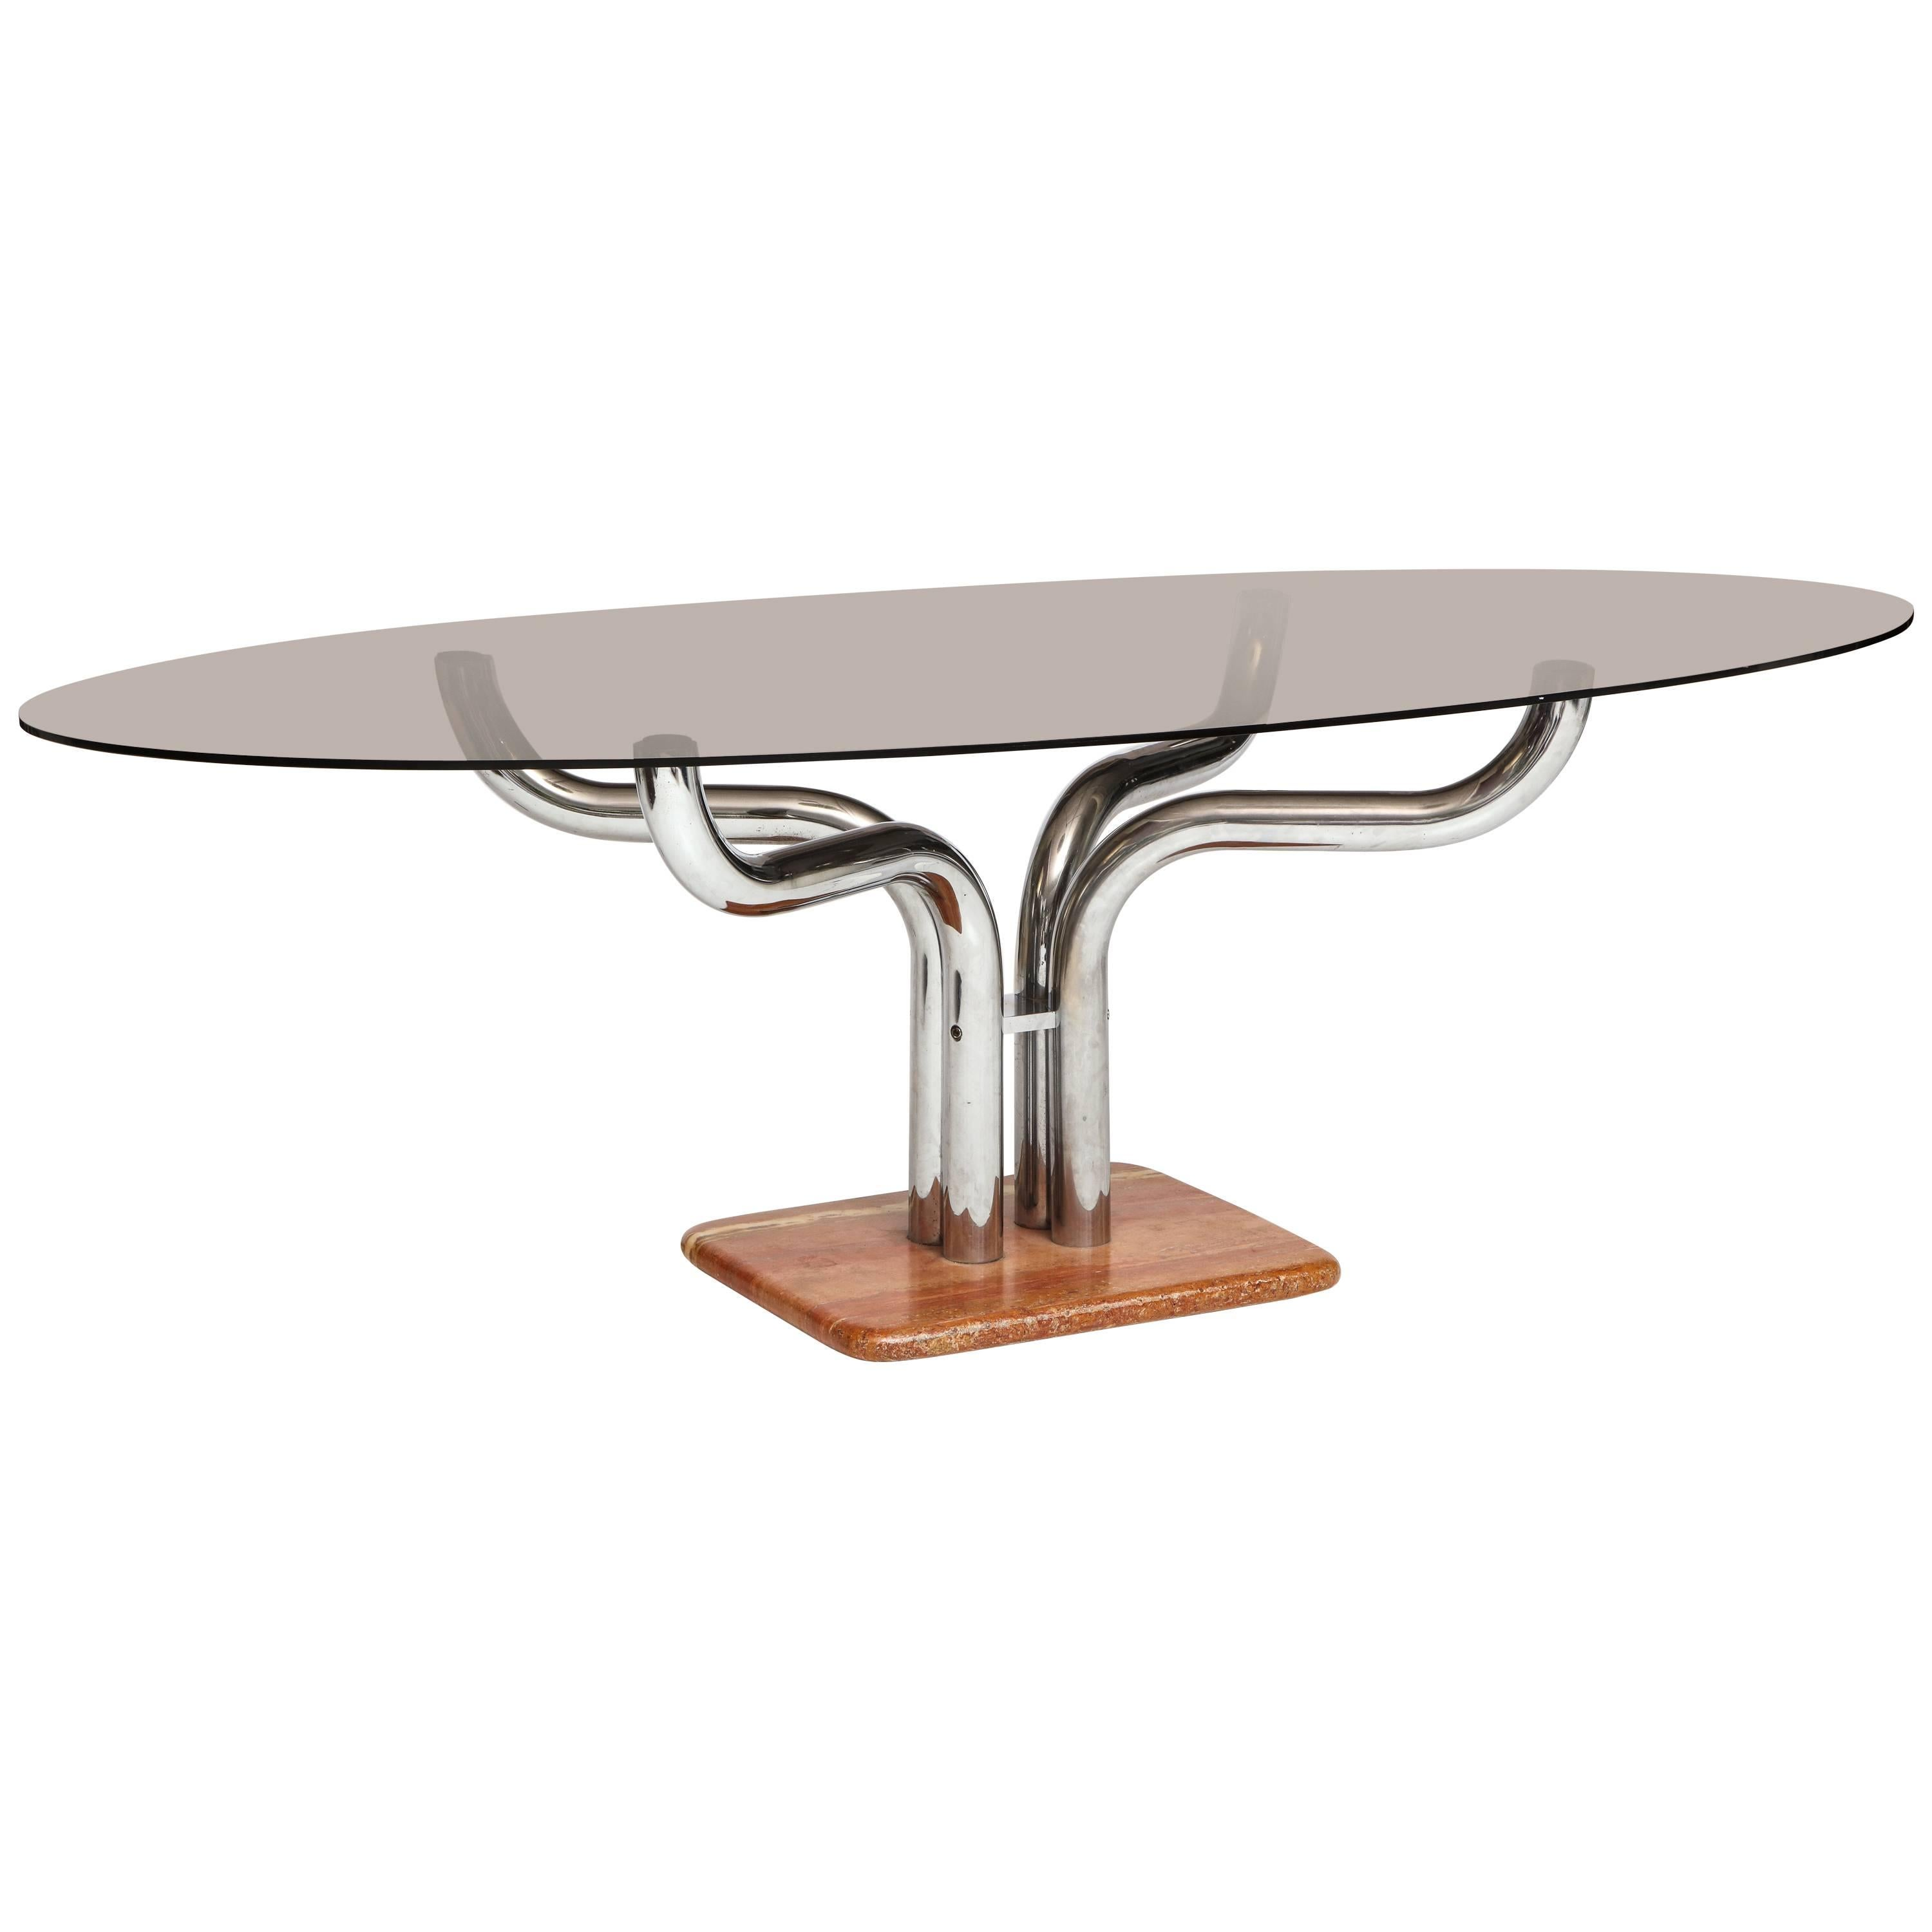 Beautiful Dining Table Rose Marble Base and Chrome Architectural Arms, Italy